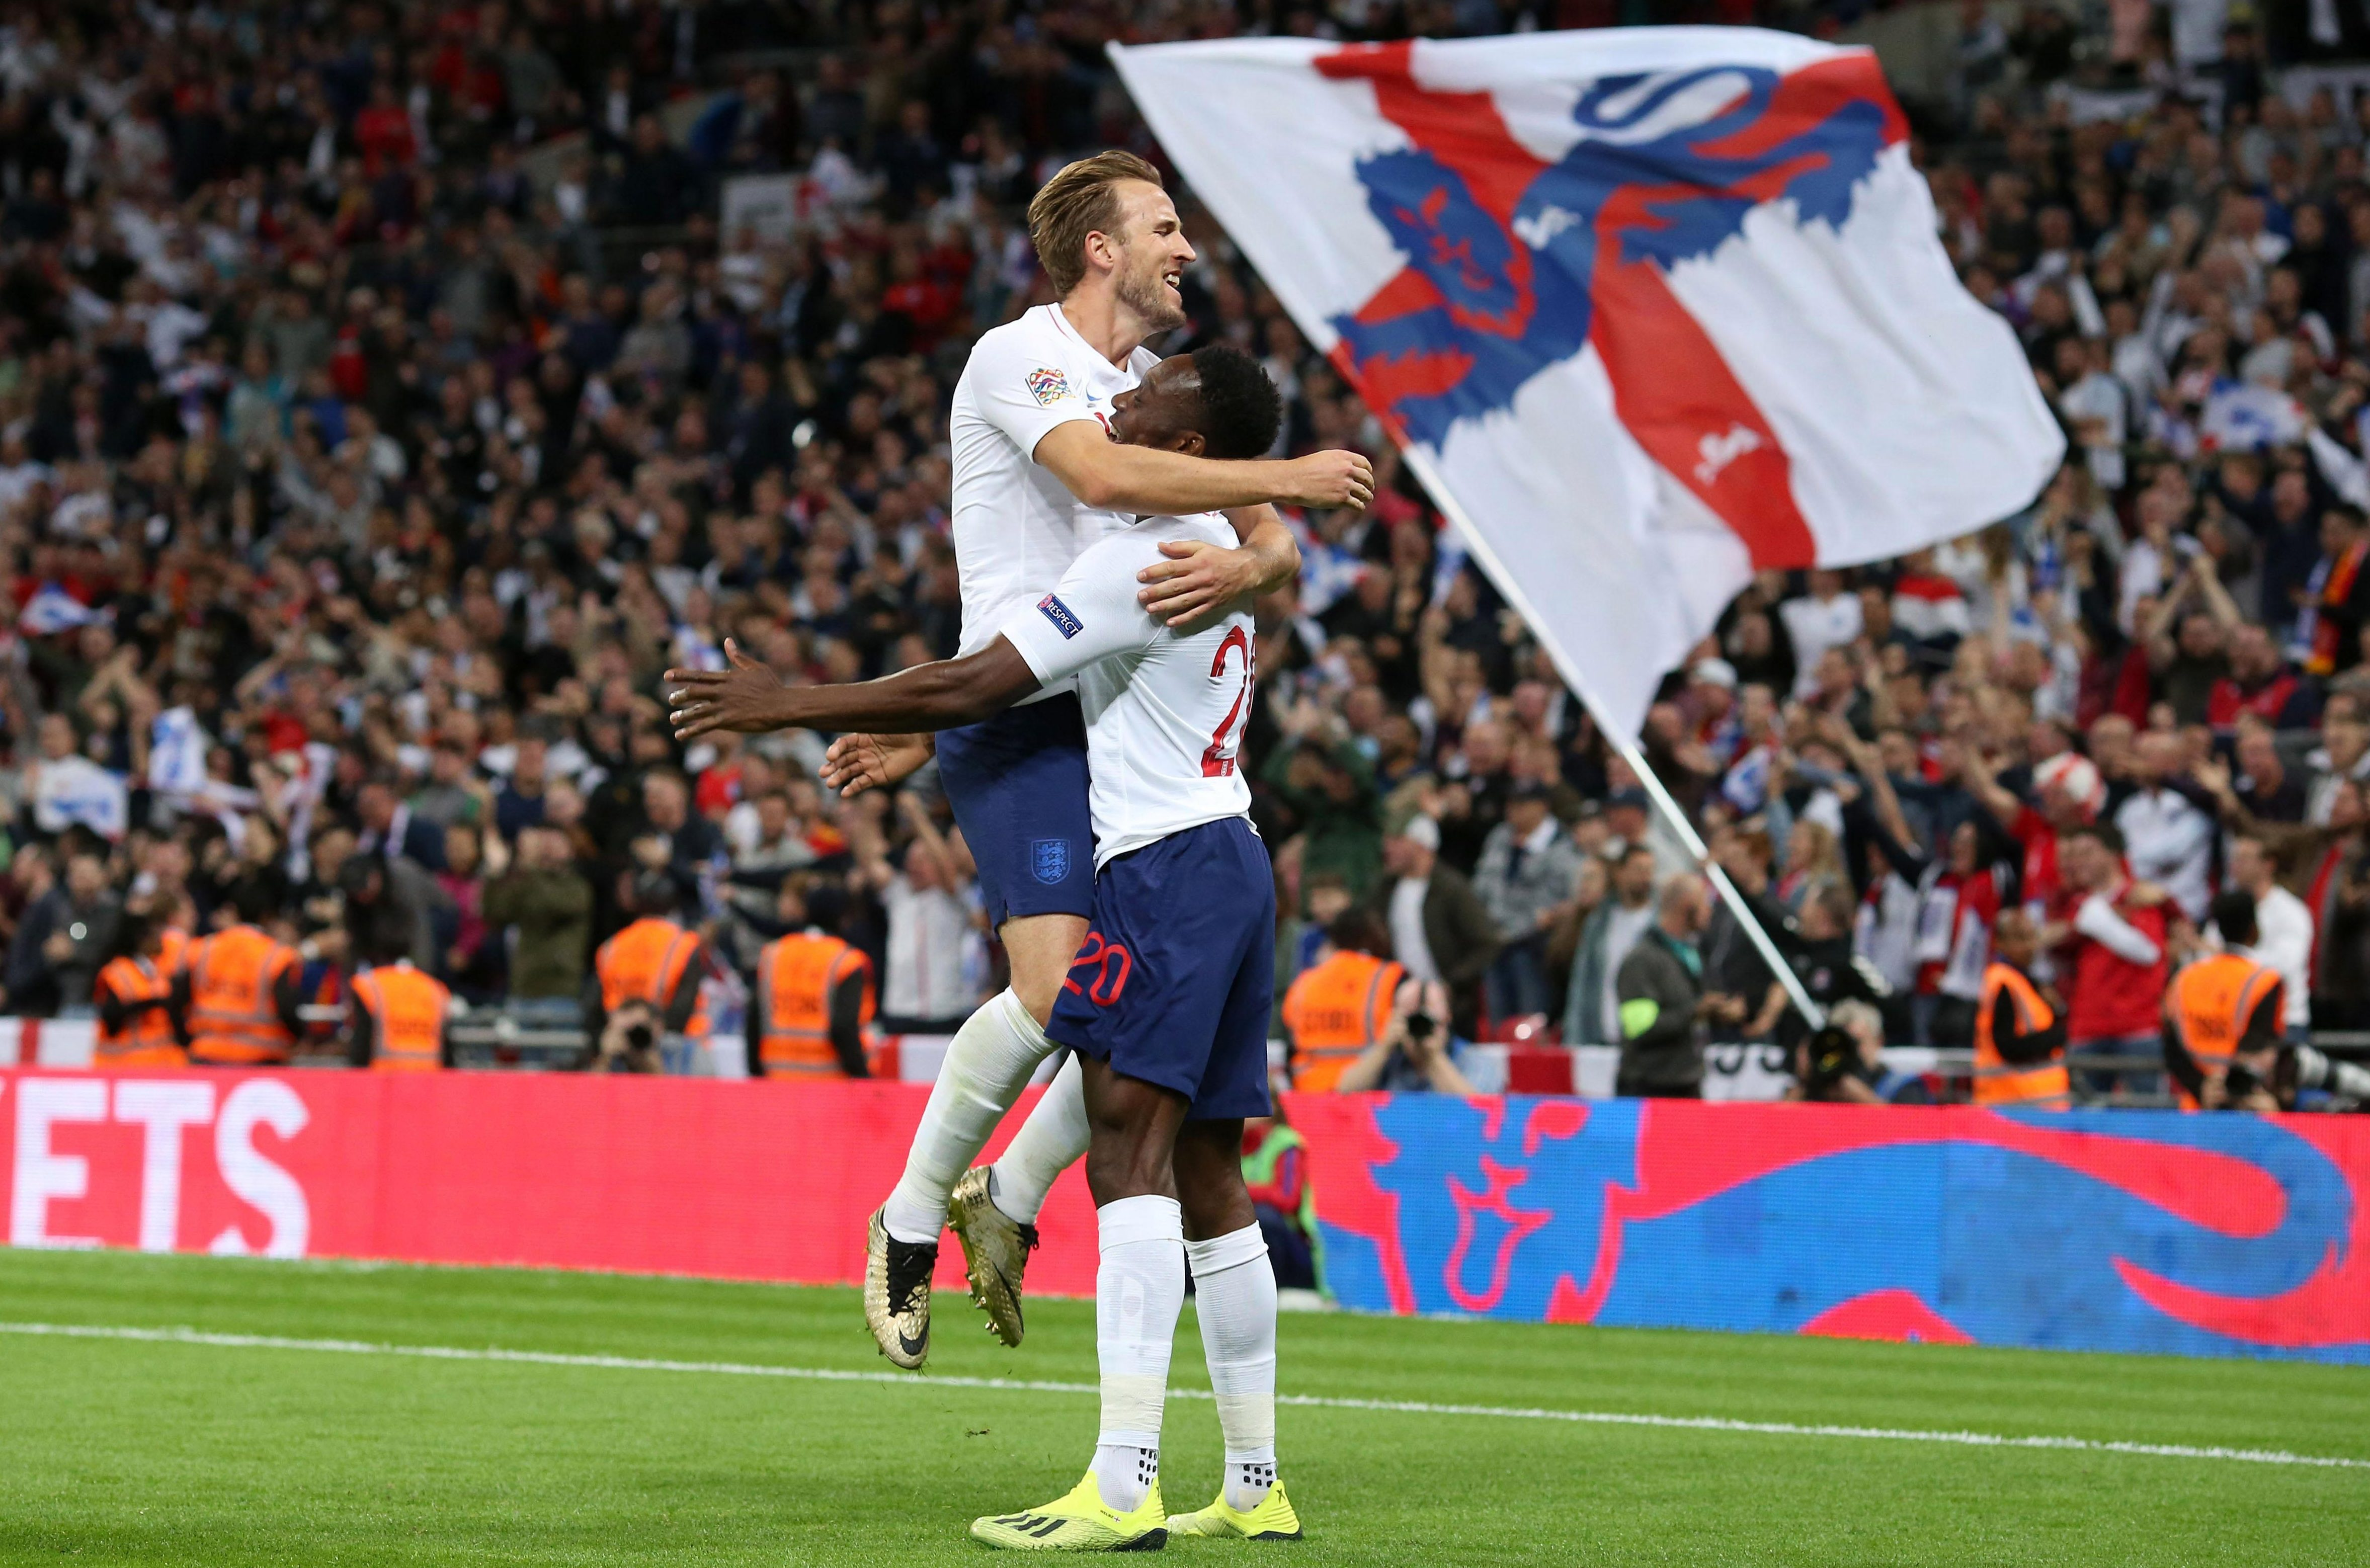 Kane celebrated with Welbeck after he knocked it in - but was pulled back for a foul on David De Gea